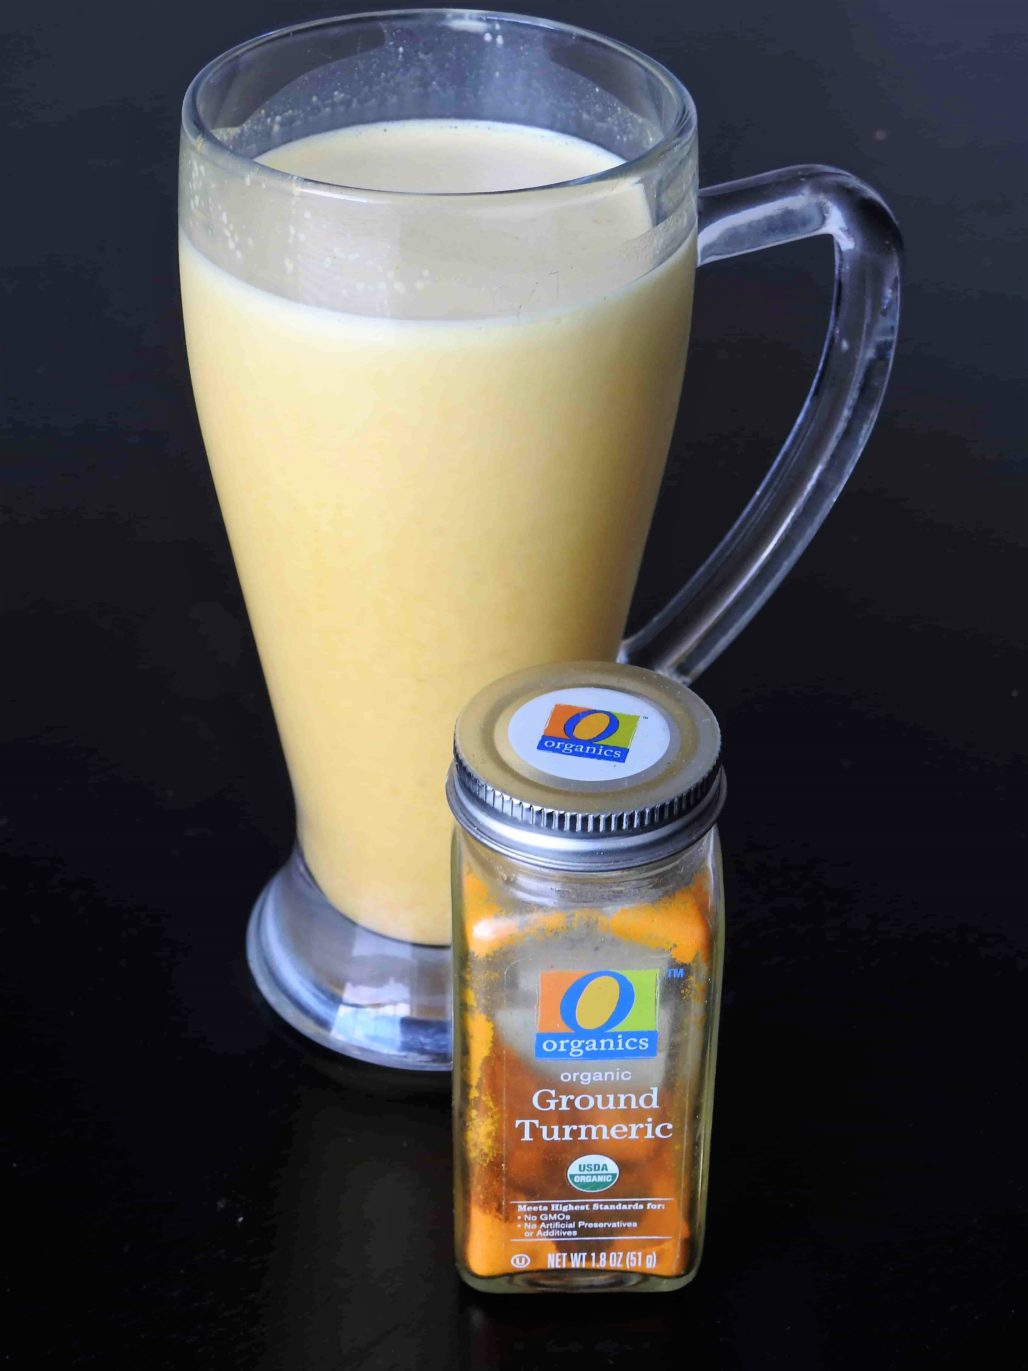 Turmeric Recovery Protein Smoothie is a tasty way to get anti-inflammatory effects and protein